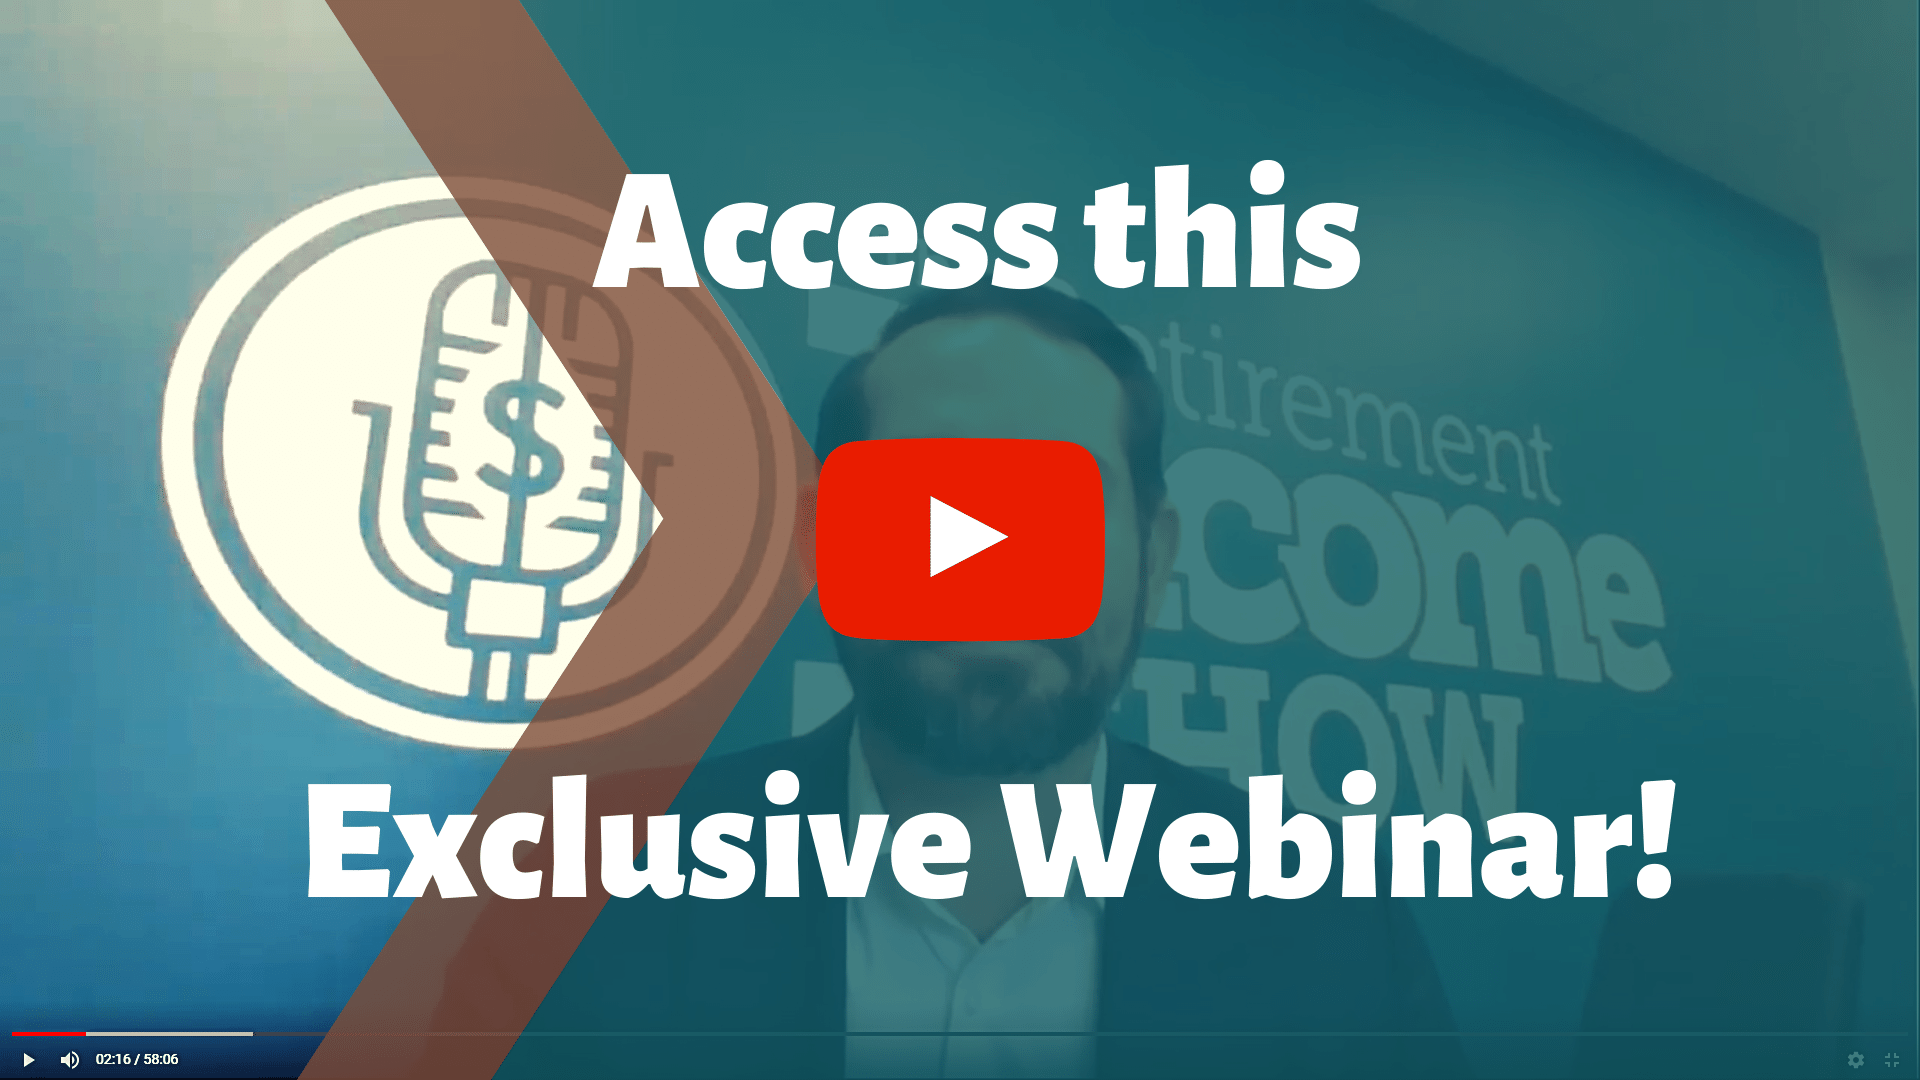 Access this Exclusive Webinar!